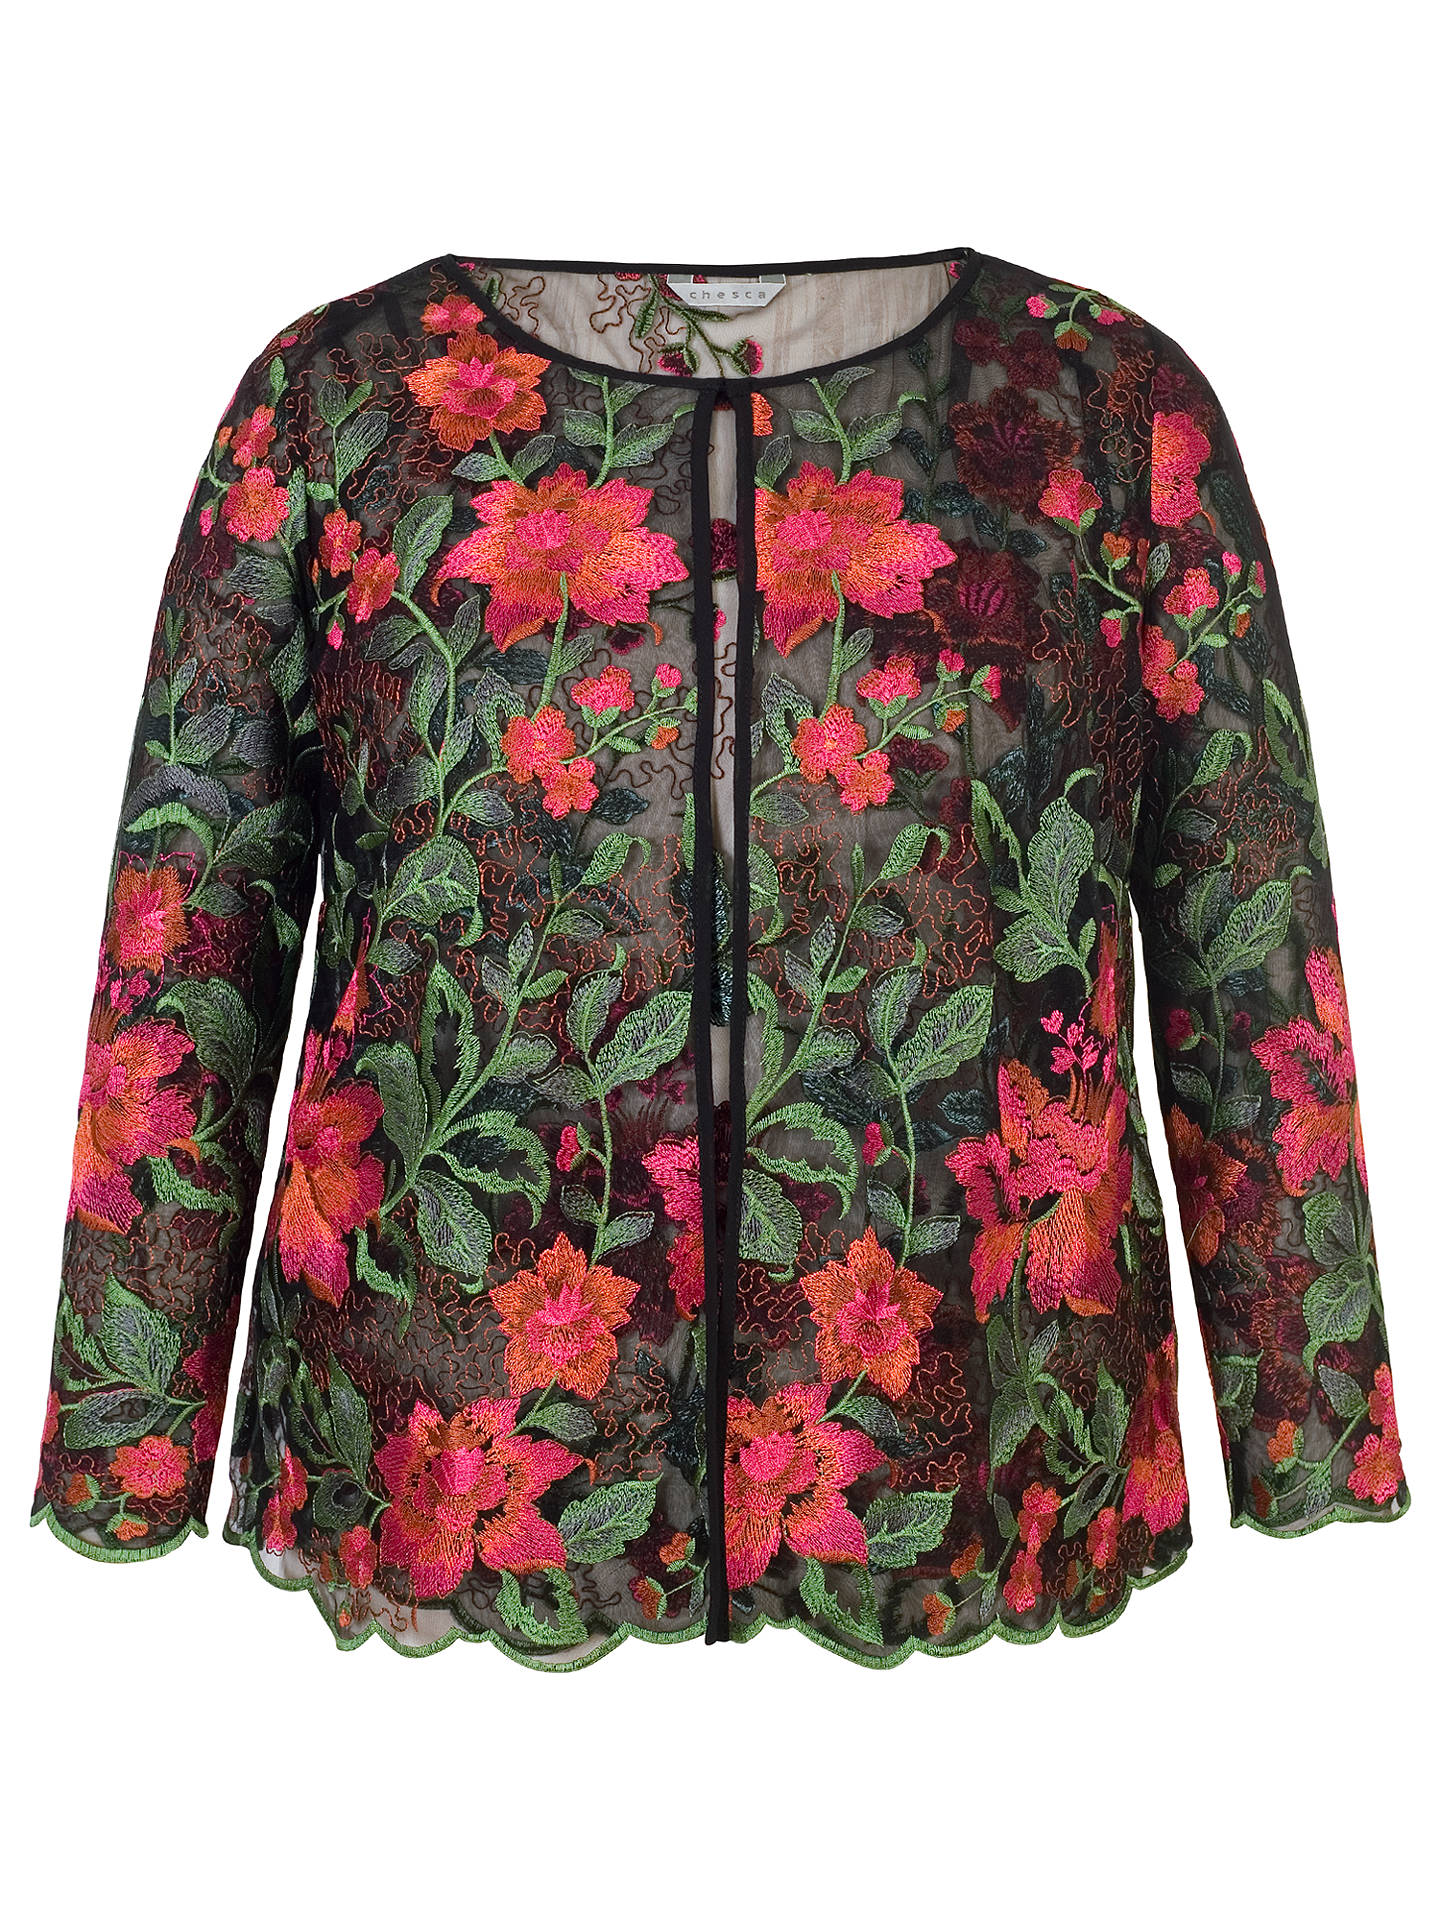 BuyChesca Scallop Trim Embroidered Jacket, Black/Pink, 12 Online at johnlewis.com